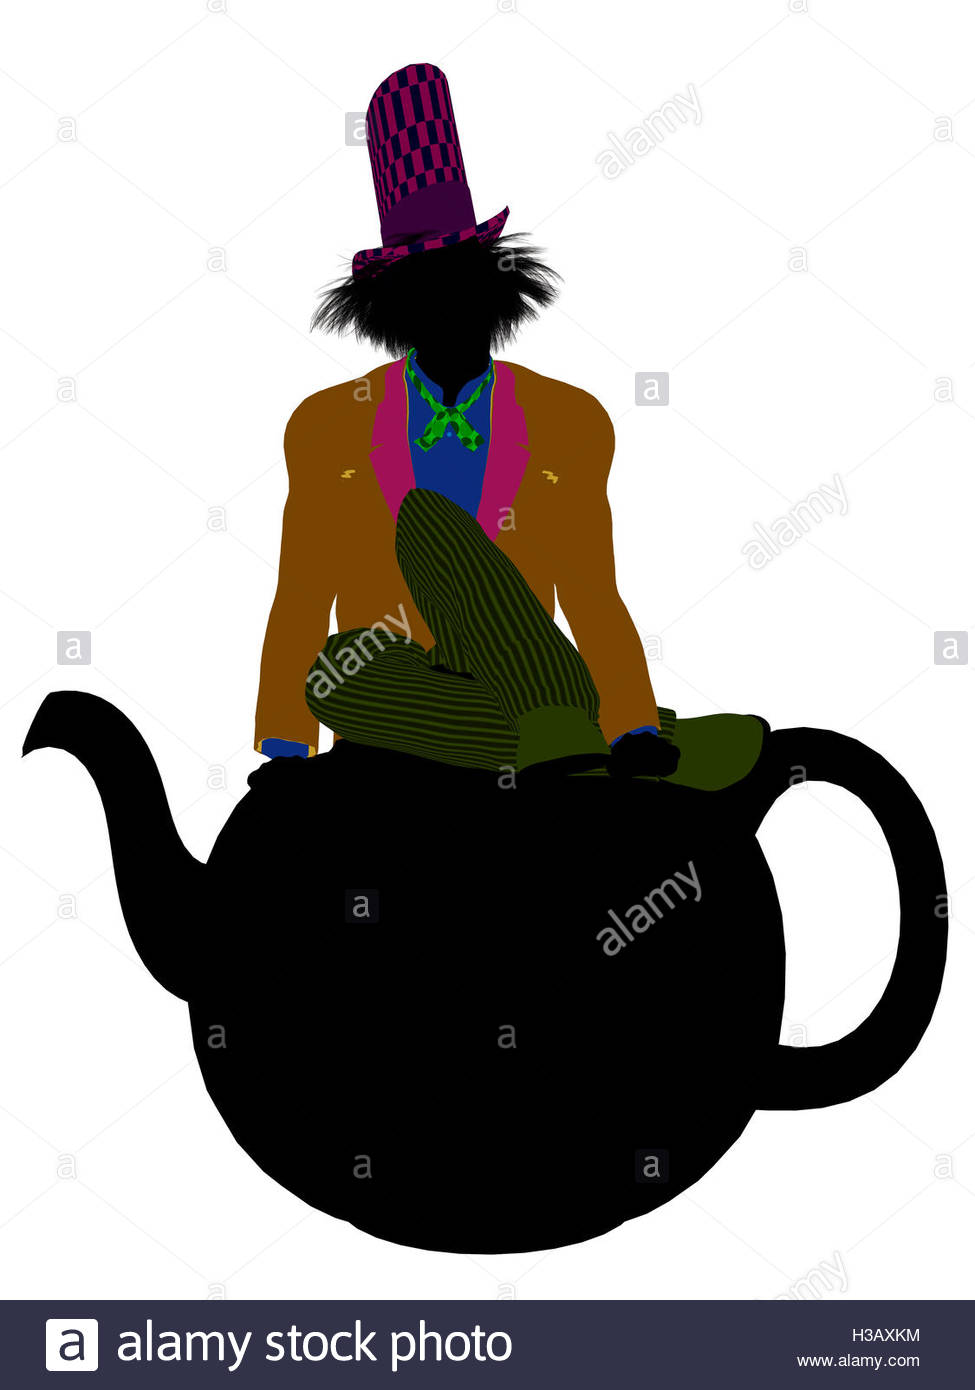 975x1390 Madhatter Silhouette Illustration Stock Photo, Royalty Free Image